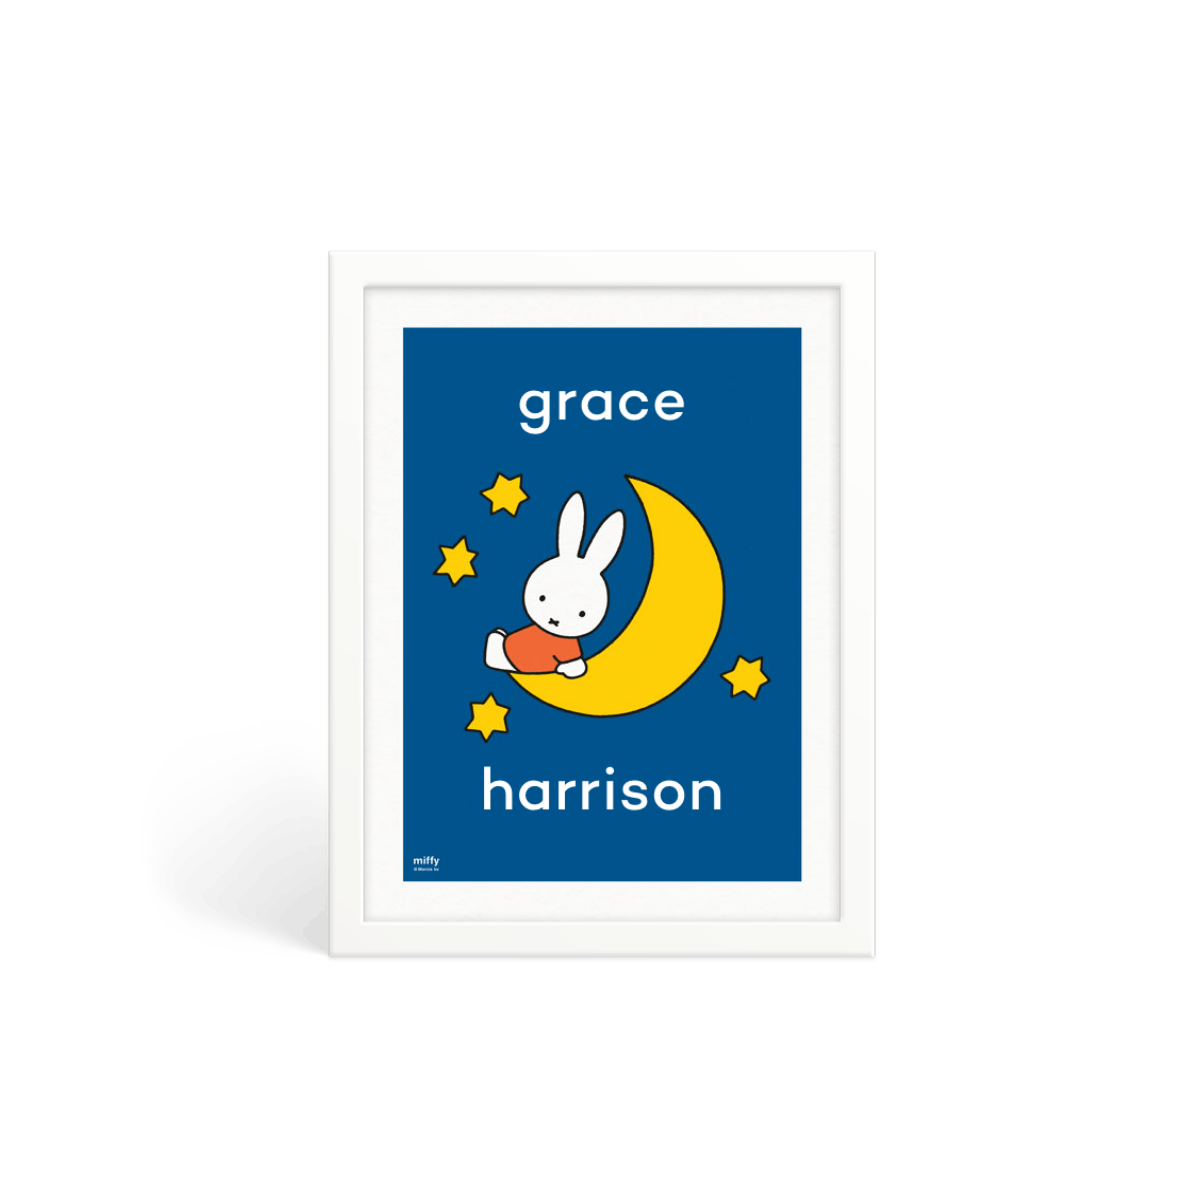 Https%3a%2f%2fwww.papier.com%2fproduct image%2f97254%2f73%2fmiffy moon stars 24403 front 1574442163.png?ixlib=rb 1.1